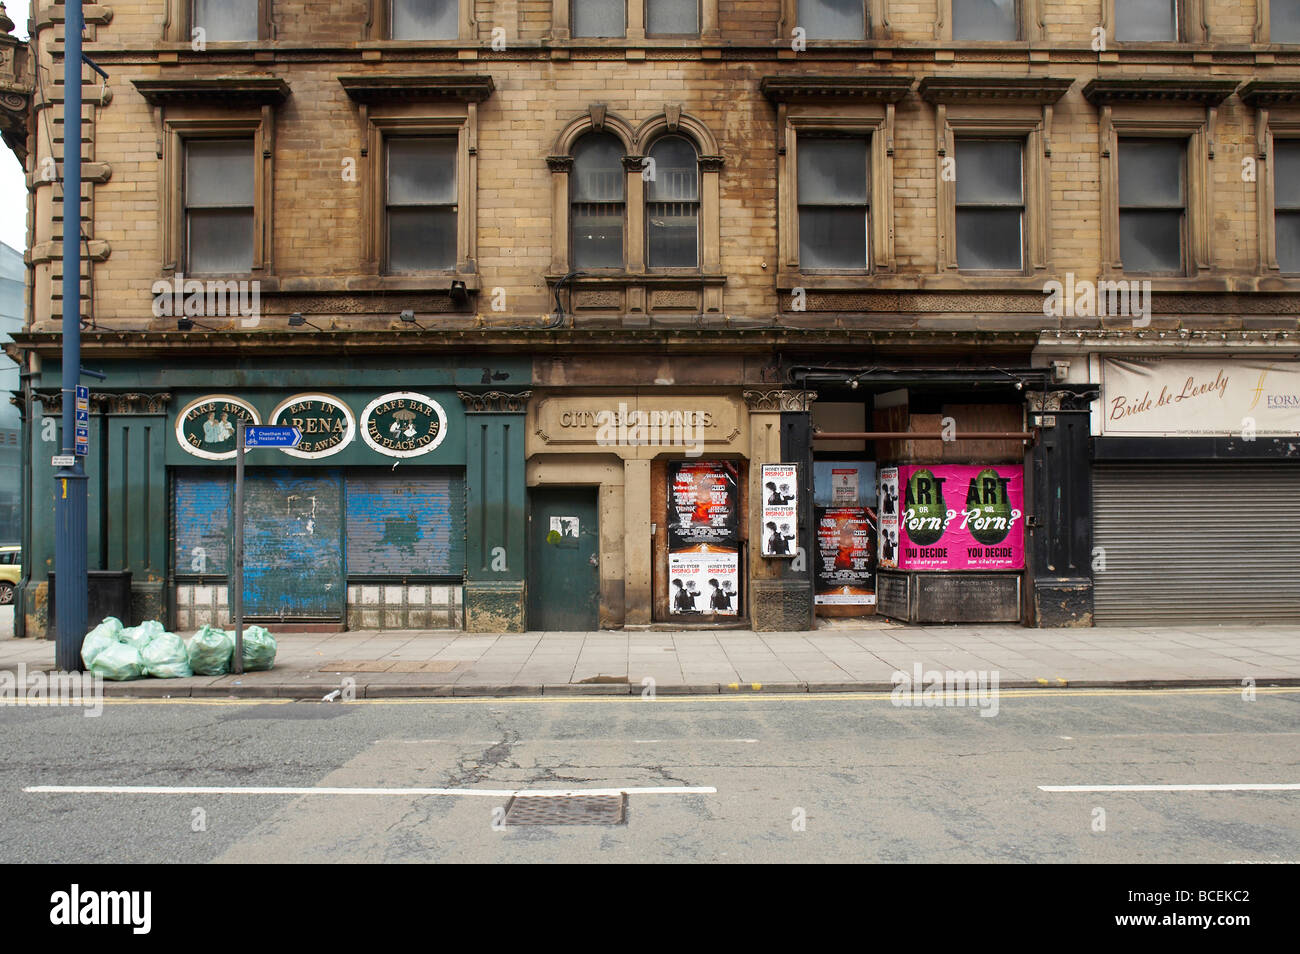 Closed down shops in City Buildings Manchester UK - Stock Image